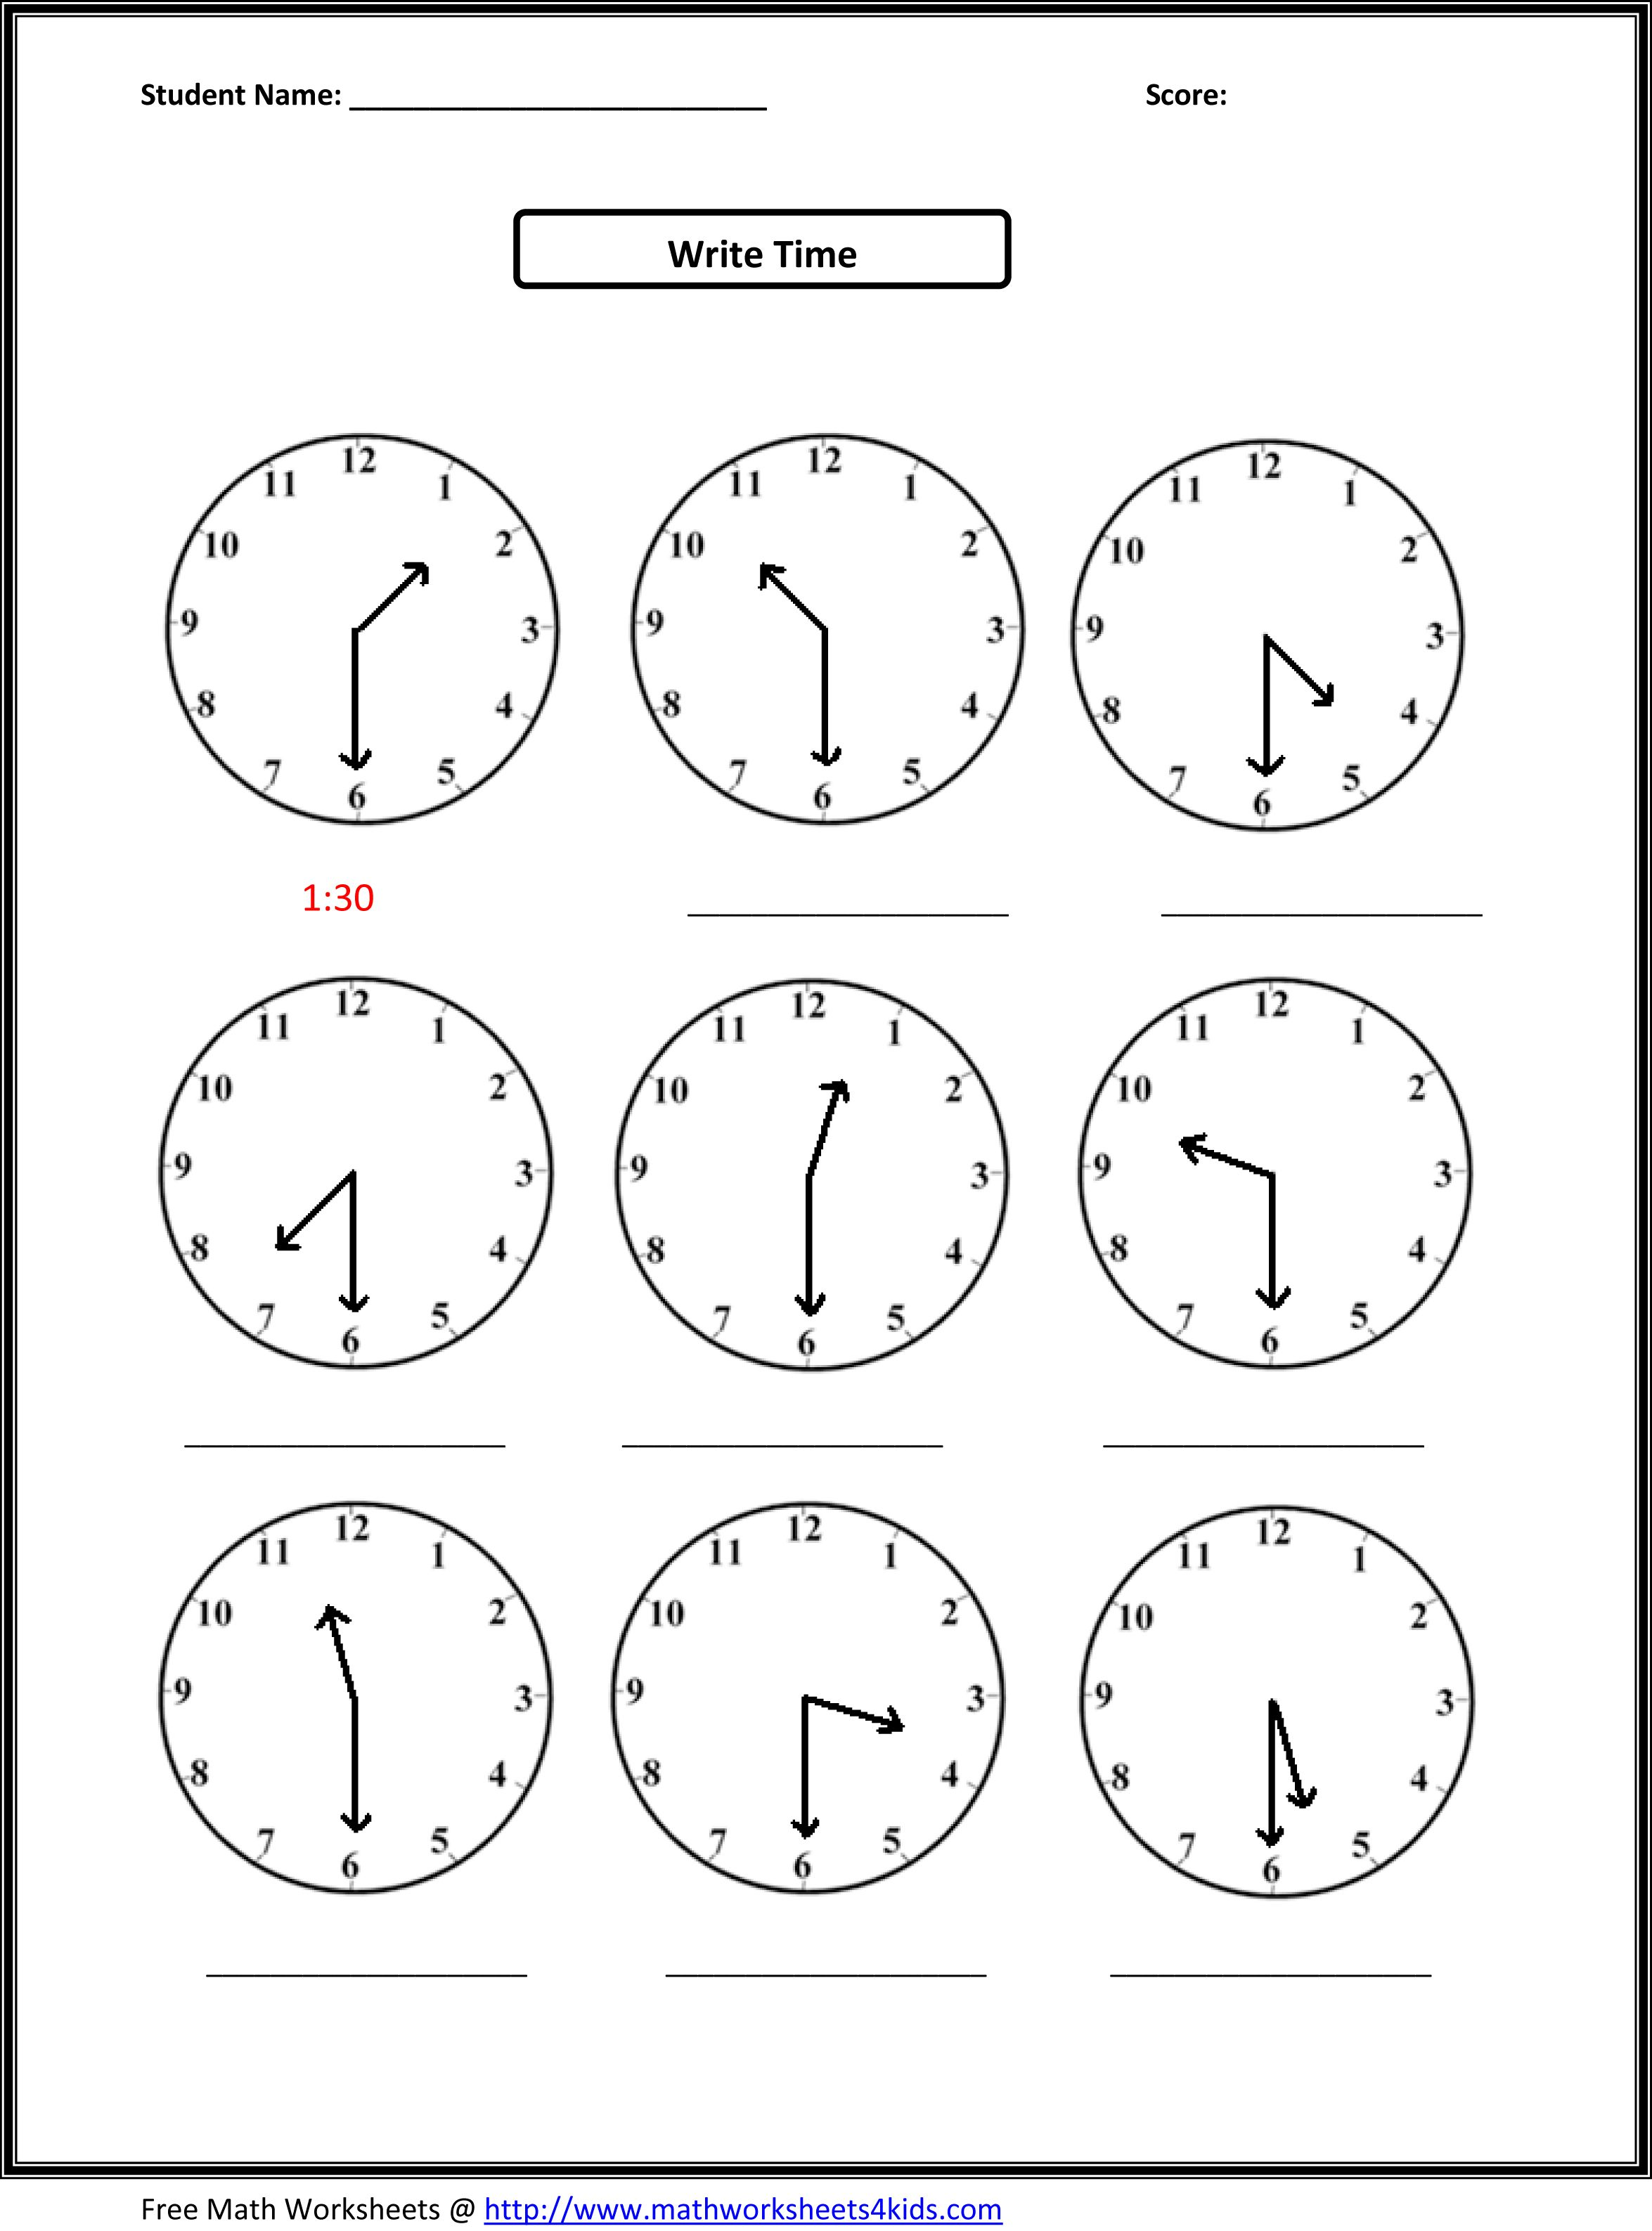 Weirdmailus  Unusual Worksheet On Time For Grade   Reocurent With Heavenly Free Printable Telling Time Worksheets Nd Grade  Reocurent With Enchanting Compound Shapes Area And Perimeter Worksheet Also Home Energy Audit Worksheet In Addition Th Ch Sh Worksheets And Gcse Algebra Worksheets As Well As Phonics Phase  Worksheets Additionally Esl Pdf Grammar Worksheets From Reocurentcom With Weirdmailus  Heavenly Worksheet On Time For Grade   Reocurent With Enchanting Free Printable Telling Time Worksheets Nd Grade  Reocurent And Unusual Compound Shapes Area And Perimeter Worksheet Also Home Energy Audit Worksheet In Addition Th Ch Sh Worksheets From Reocurentcom